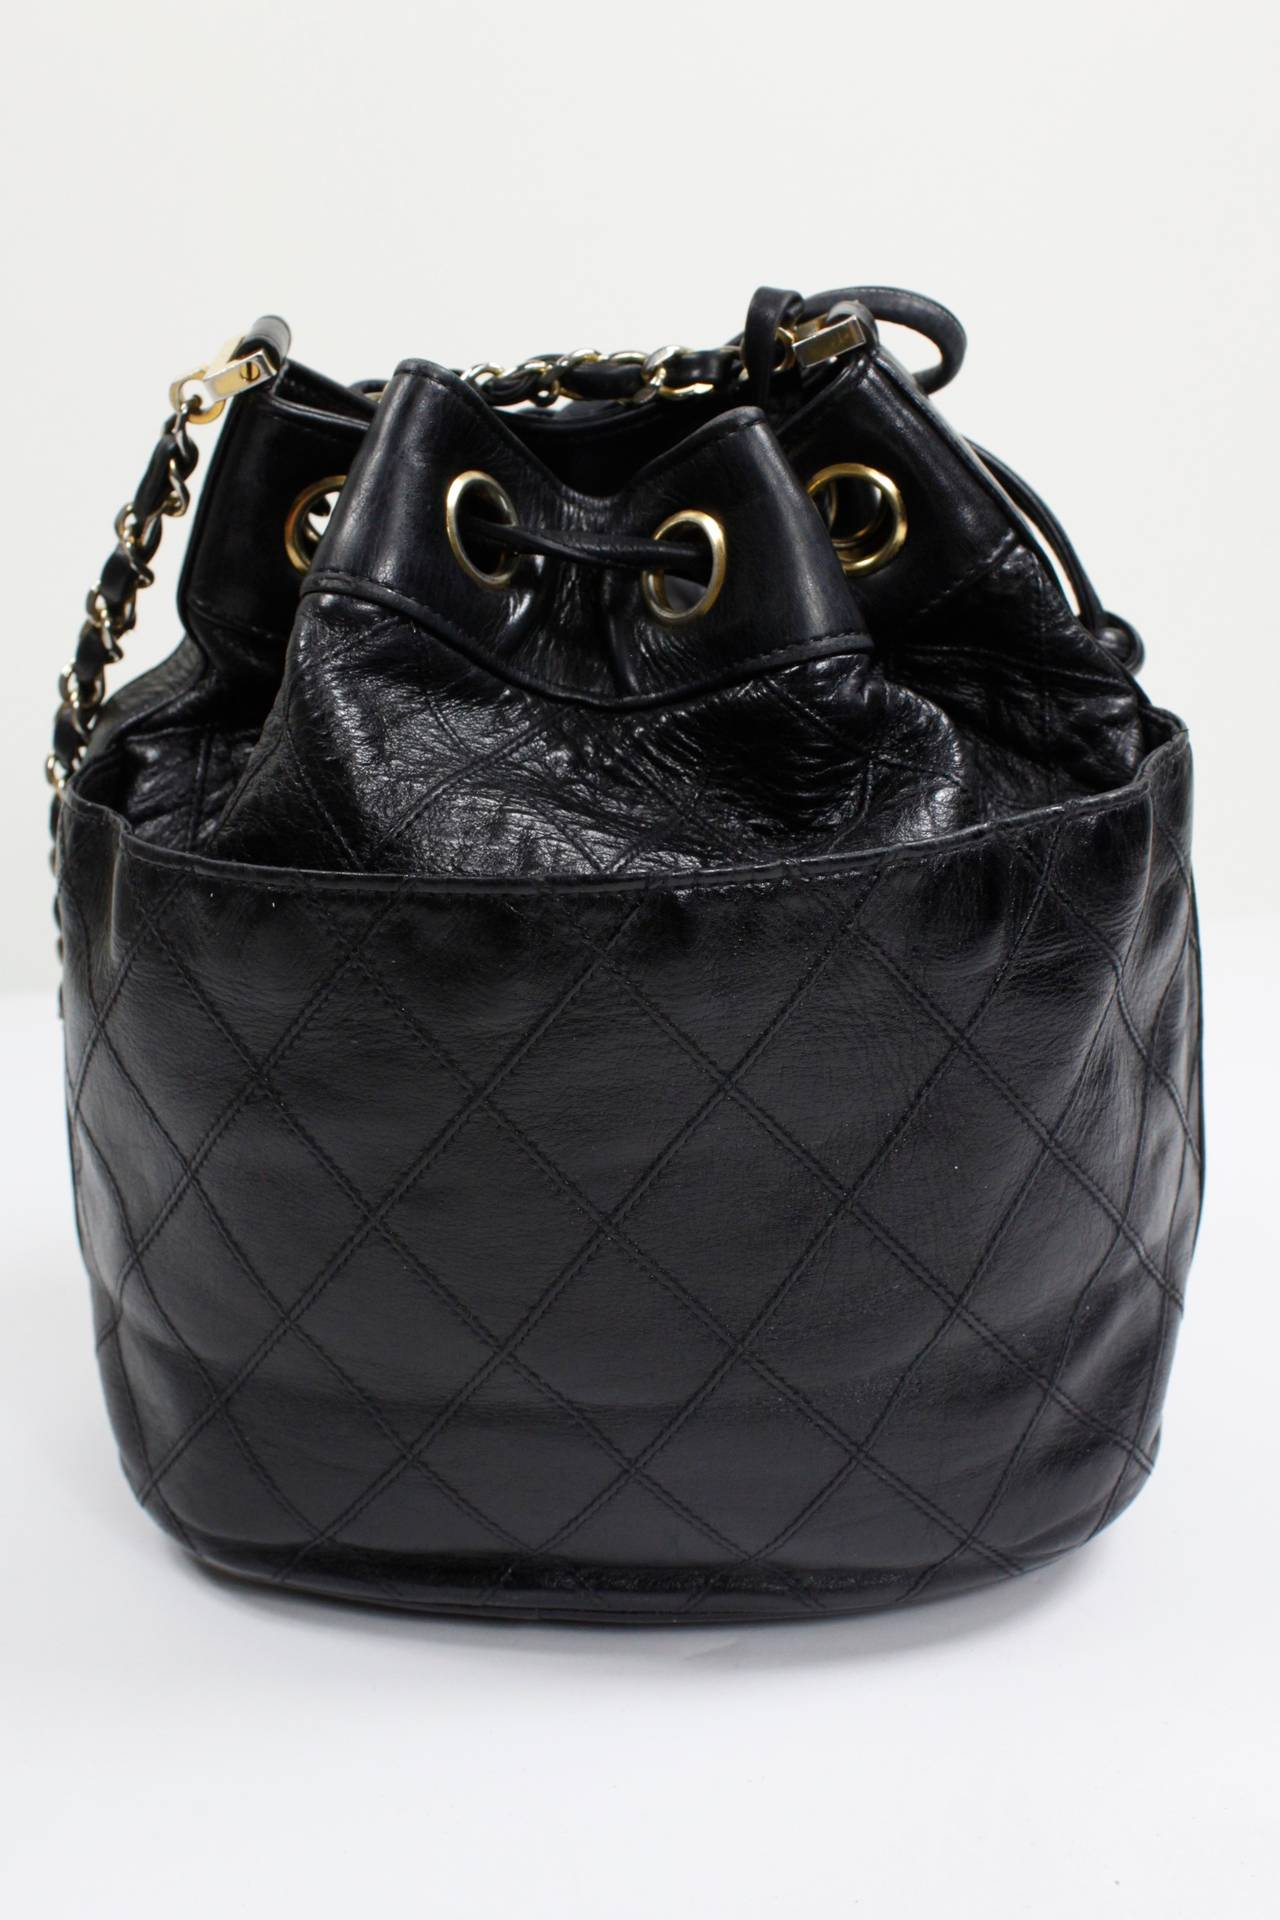 Chanel Black Quilted Bucket Bag with Logo and Chain Strap 4